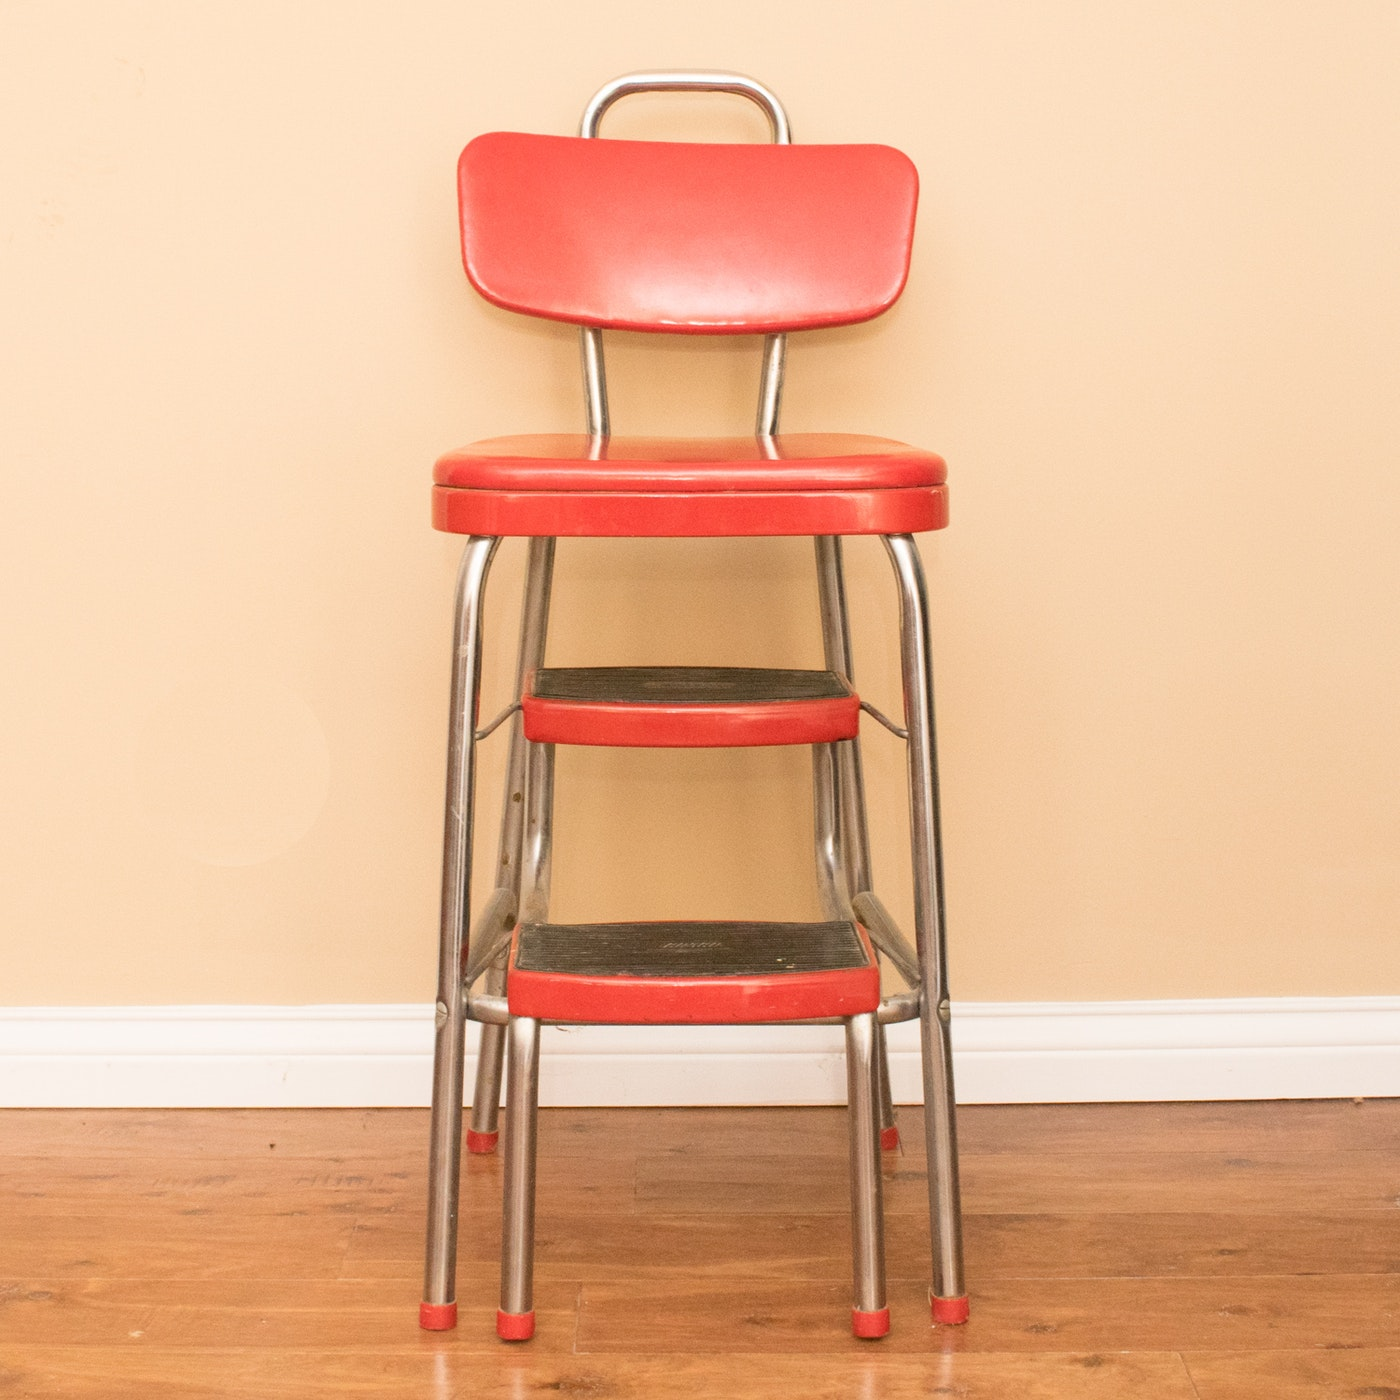 vintage red cosco step stool chair ebth